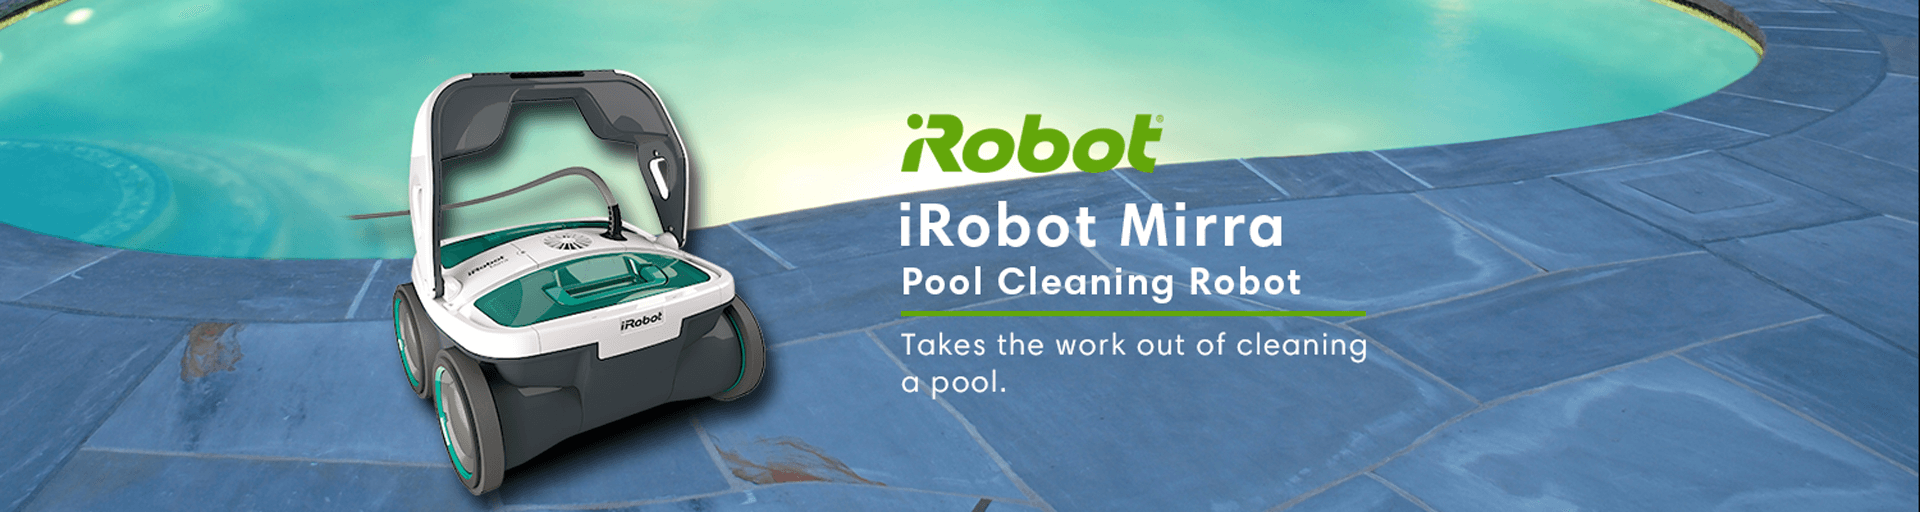 iRobot Mirra 530 - Pool Cleaning Robot